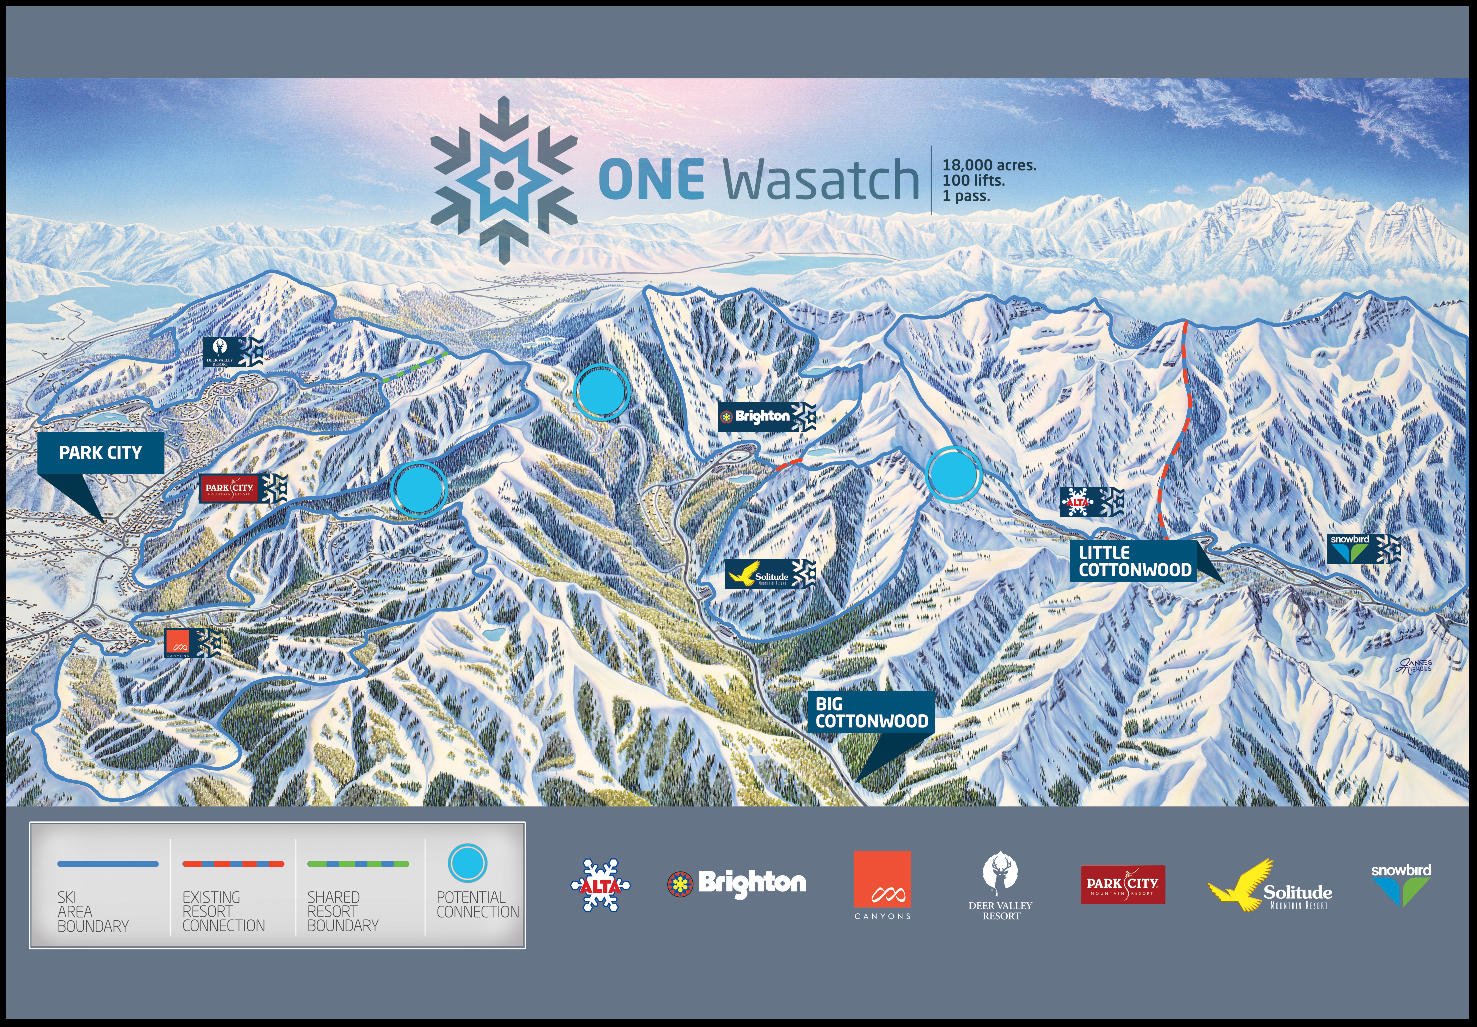 ski utah announces concept of connecting seven resorts | kpcw